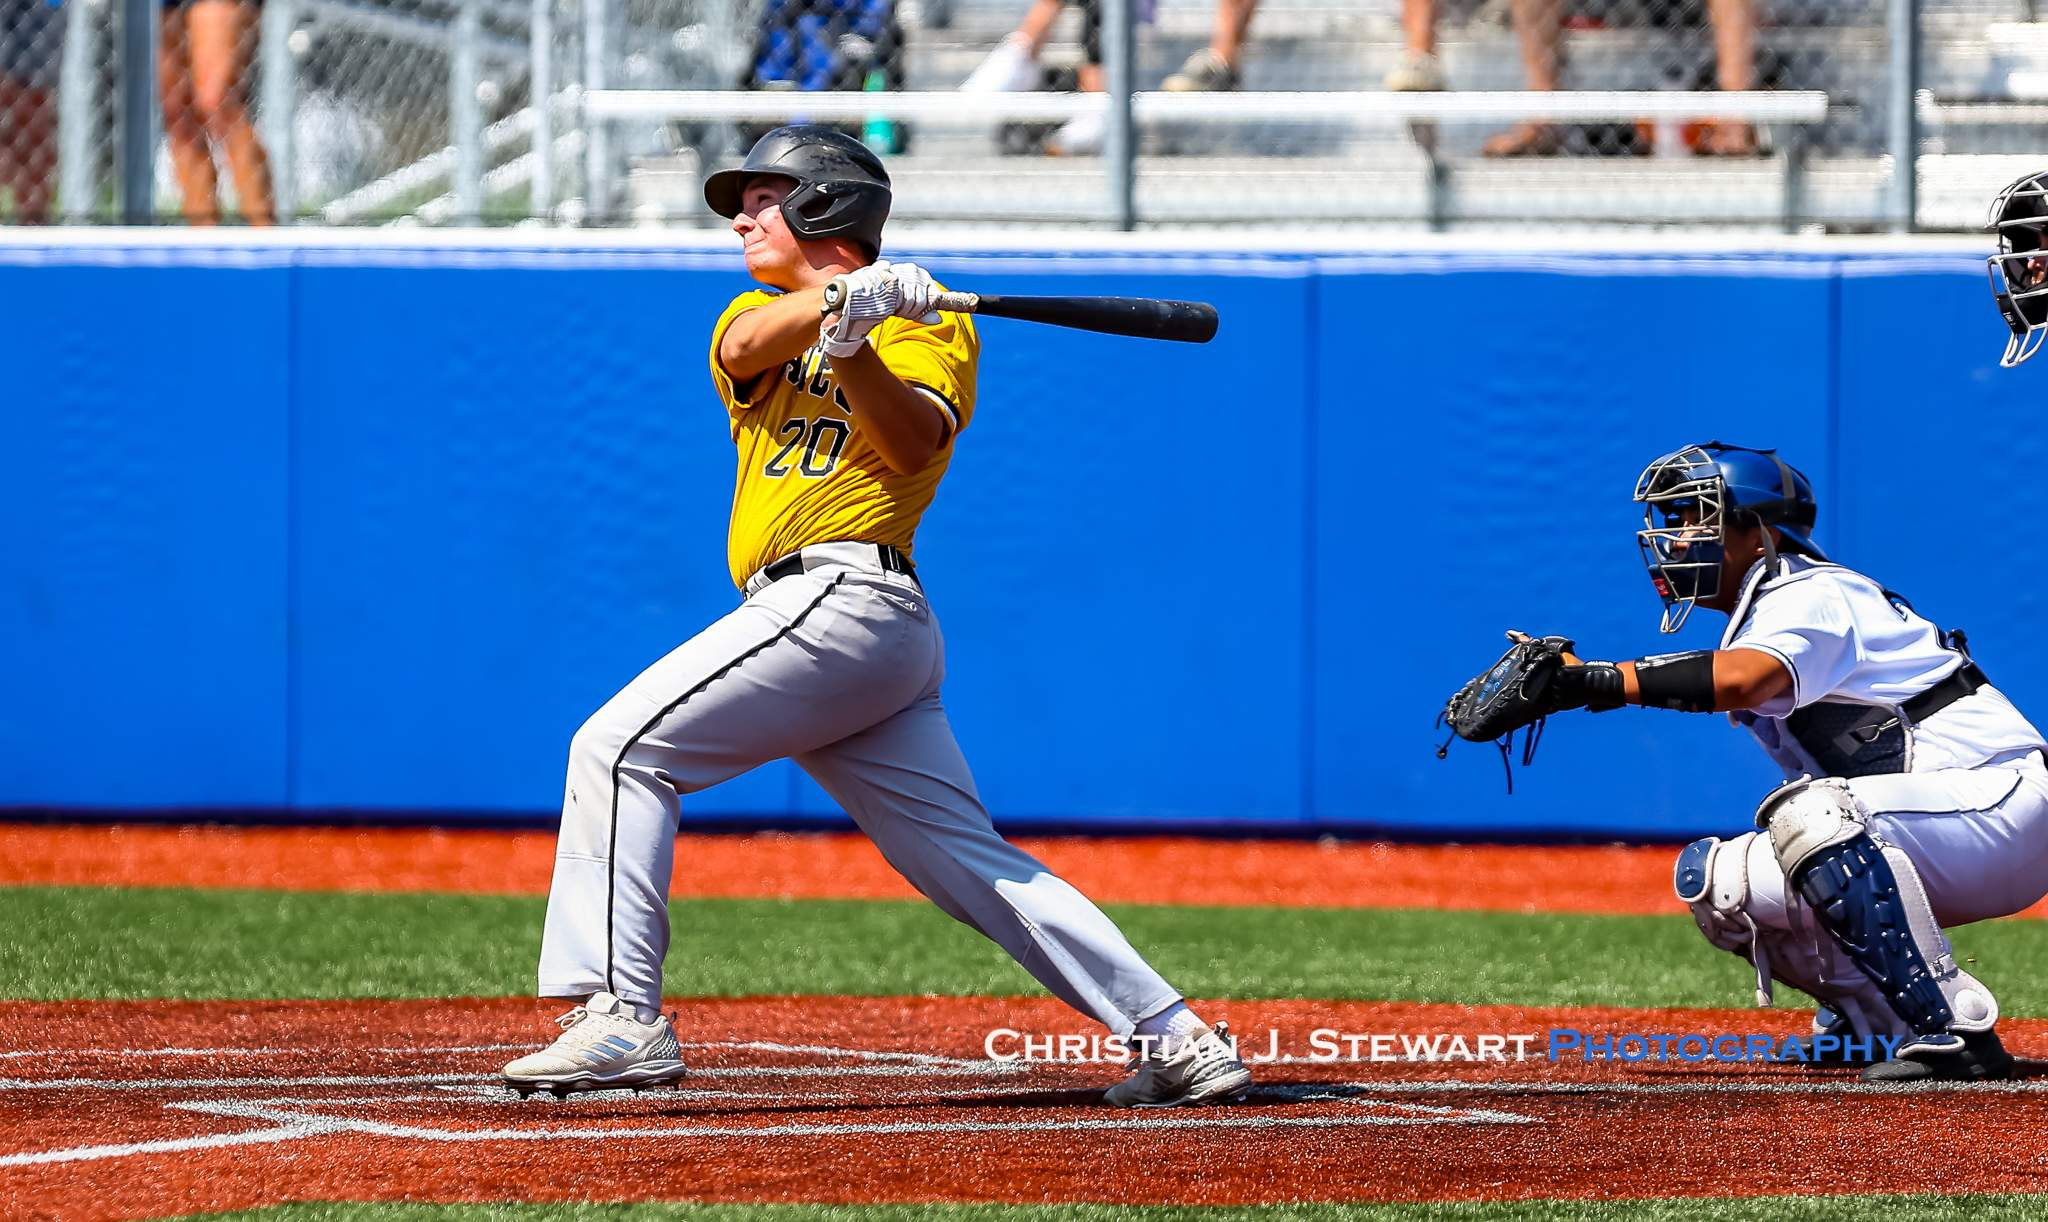 Mid-Island Pirates Brody Deverill strokes the game winning hit in the bottom of the seventh inning against UBC (Photo: Christian J. Stewart)